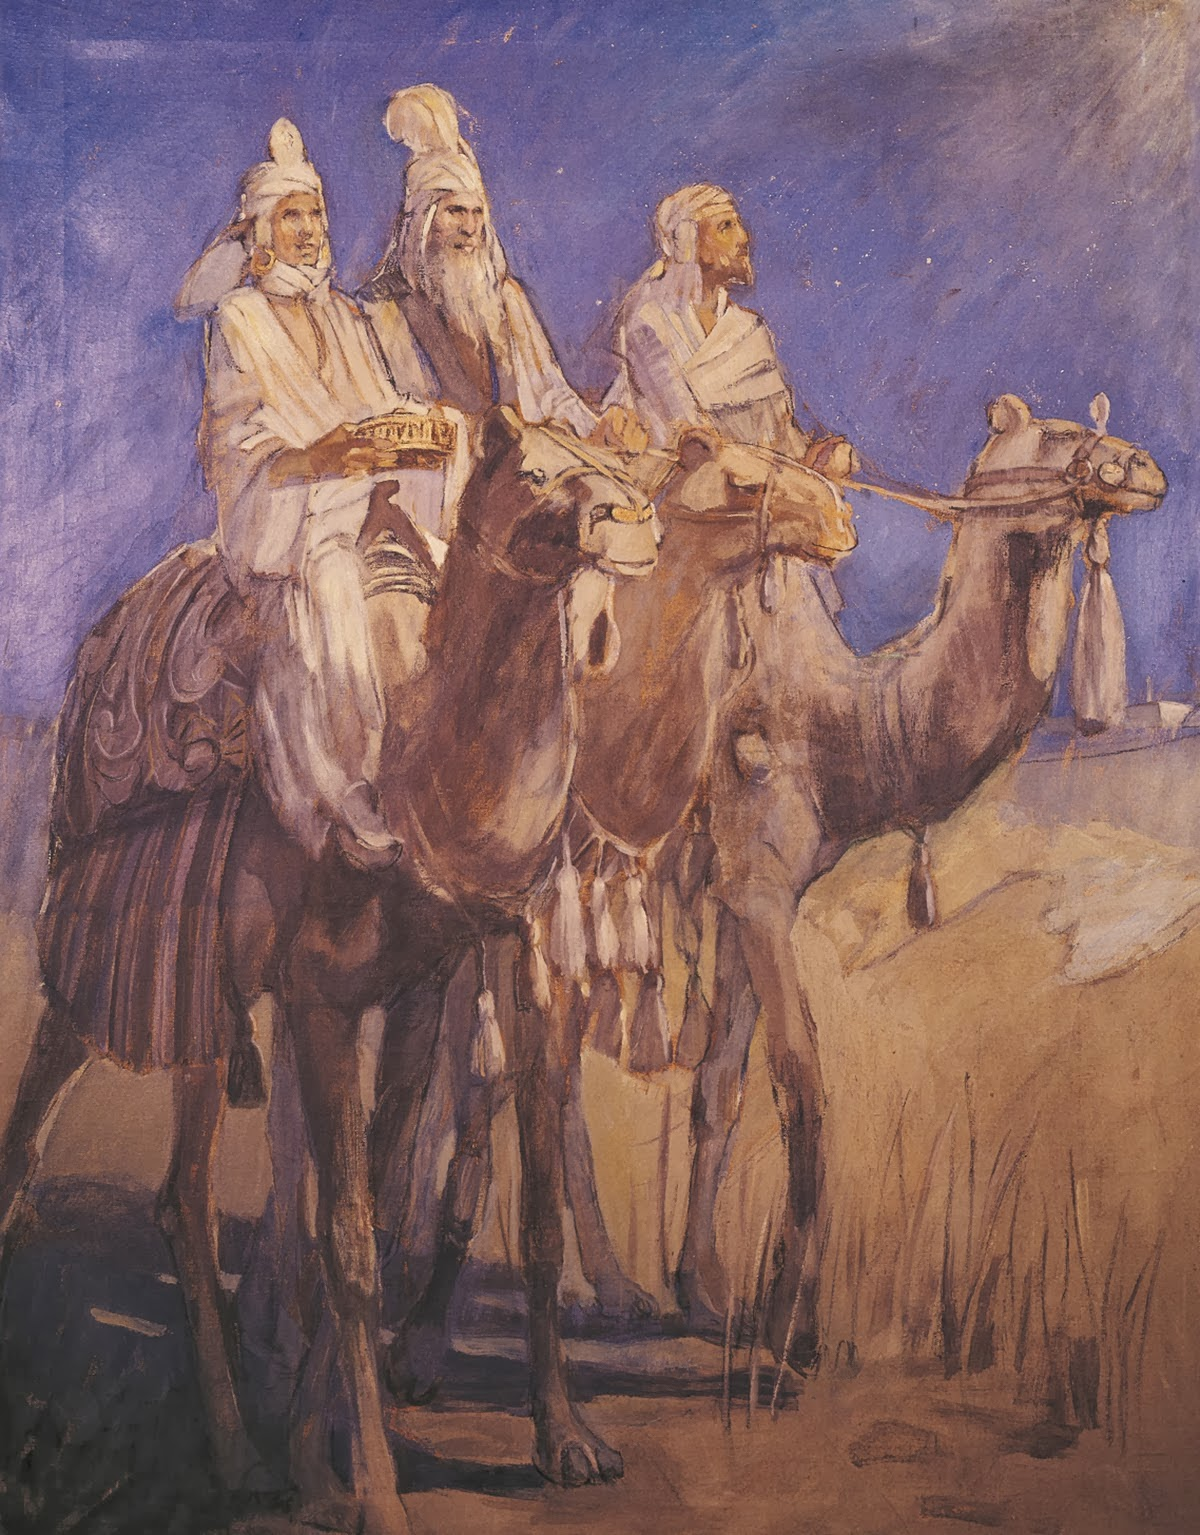 3 Wise Men Gifts For Christmas: Christmas Lessons The Shepherds And Wise Men Teach